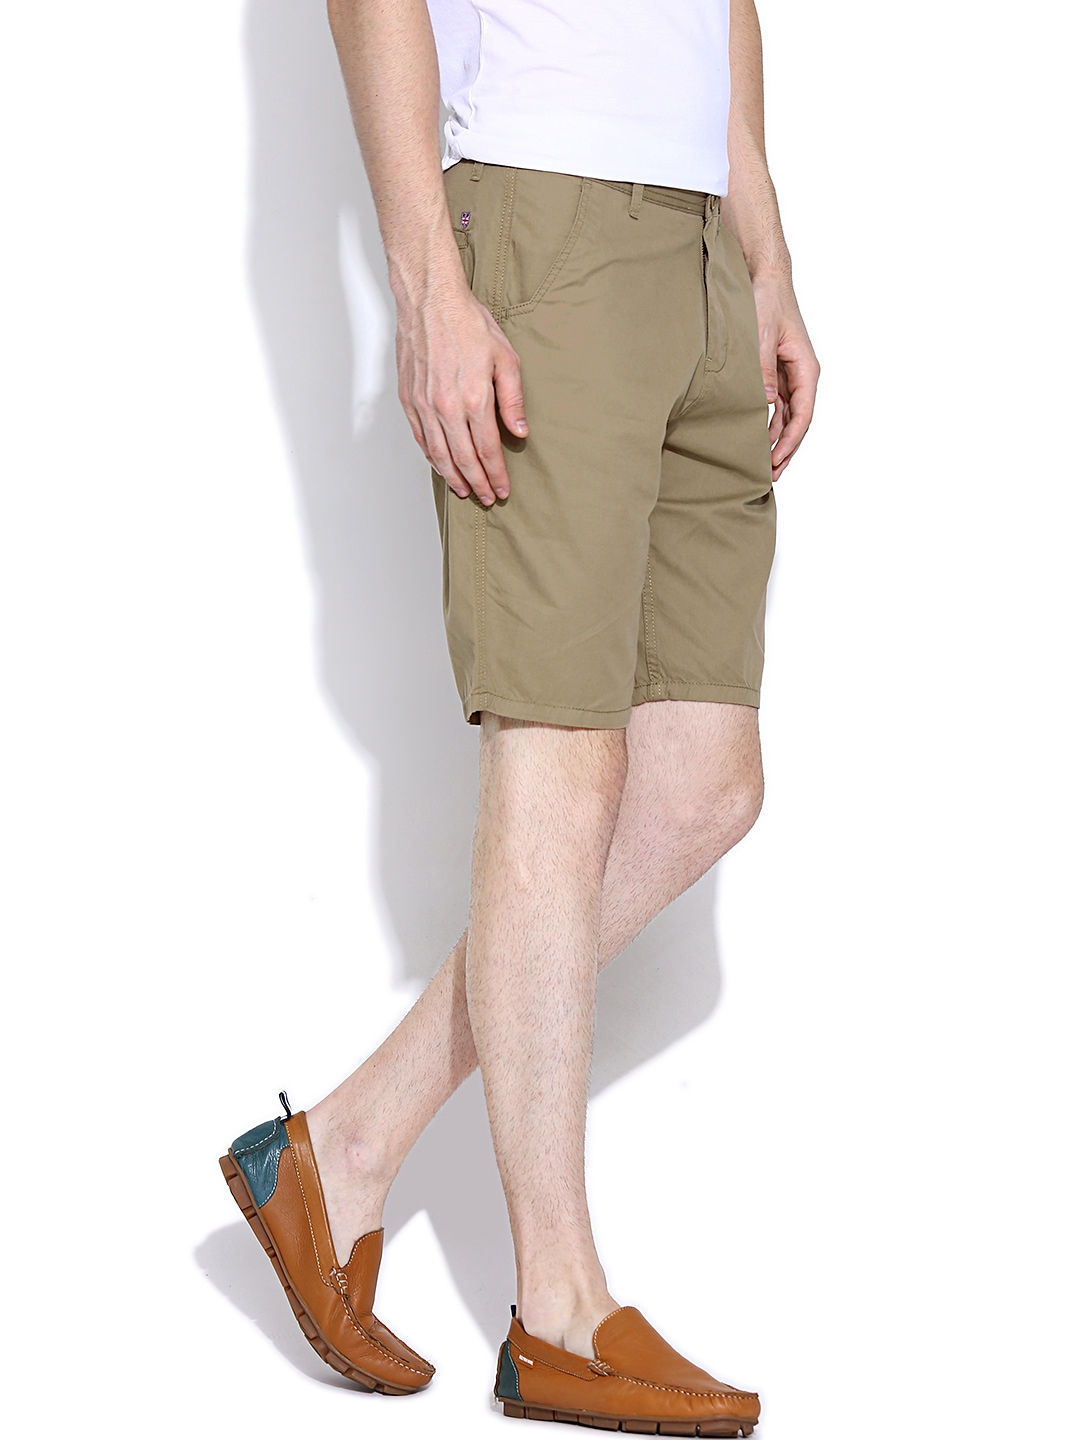 Discover Men's Khaki Shorts at Macy's. Macy's Presents: The Edit - A curated mix of fashion and inspiration Check It Out Free Shipping with $99 purchase + Free Store Pickup.